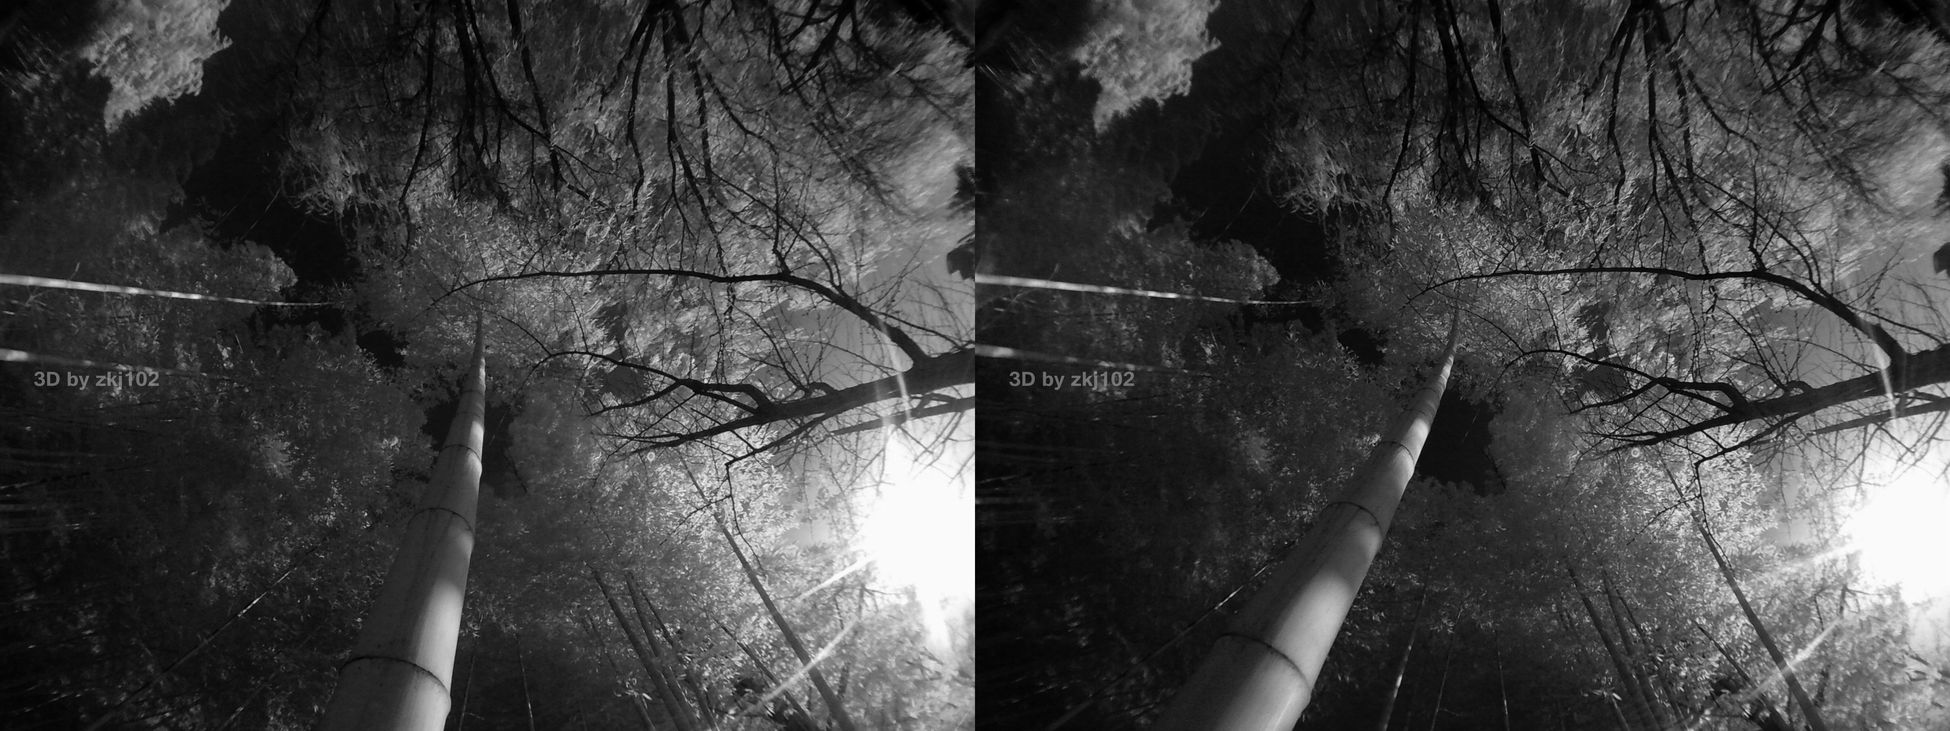 to sun Xuhui District Xuhui District Shanghai China Stereoscopic Stereoscopic Photography 3D 3D Photo Infrared Photography Information Infrared Infra Close-up No People Nature